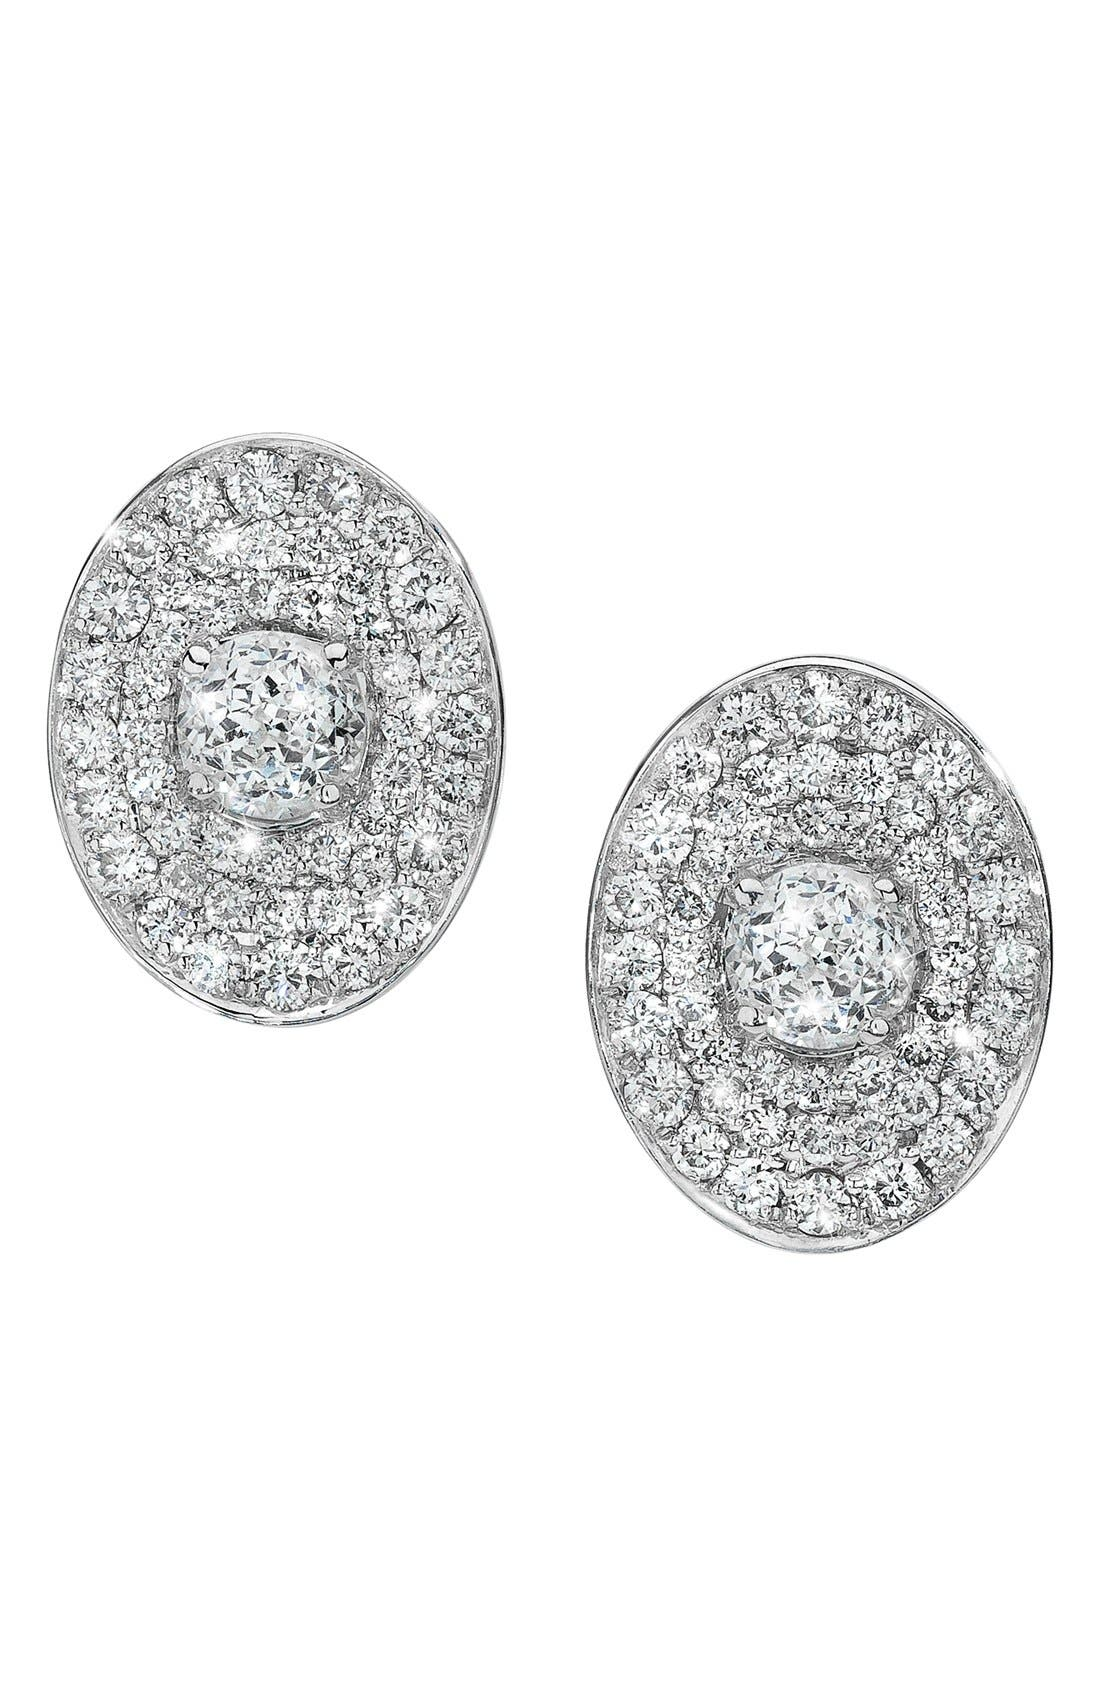 Main Image - Ivanka Trump 'Signature' Oval Pavé Diamond Stud Earrings